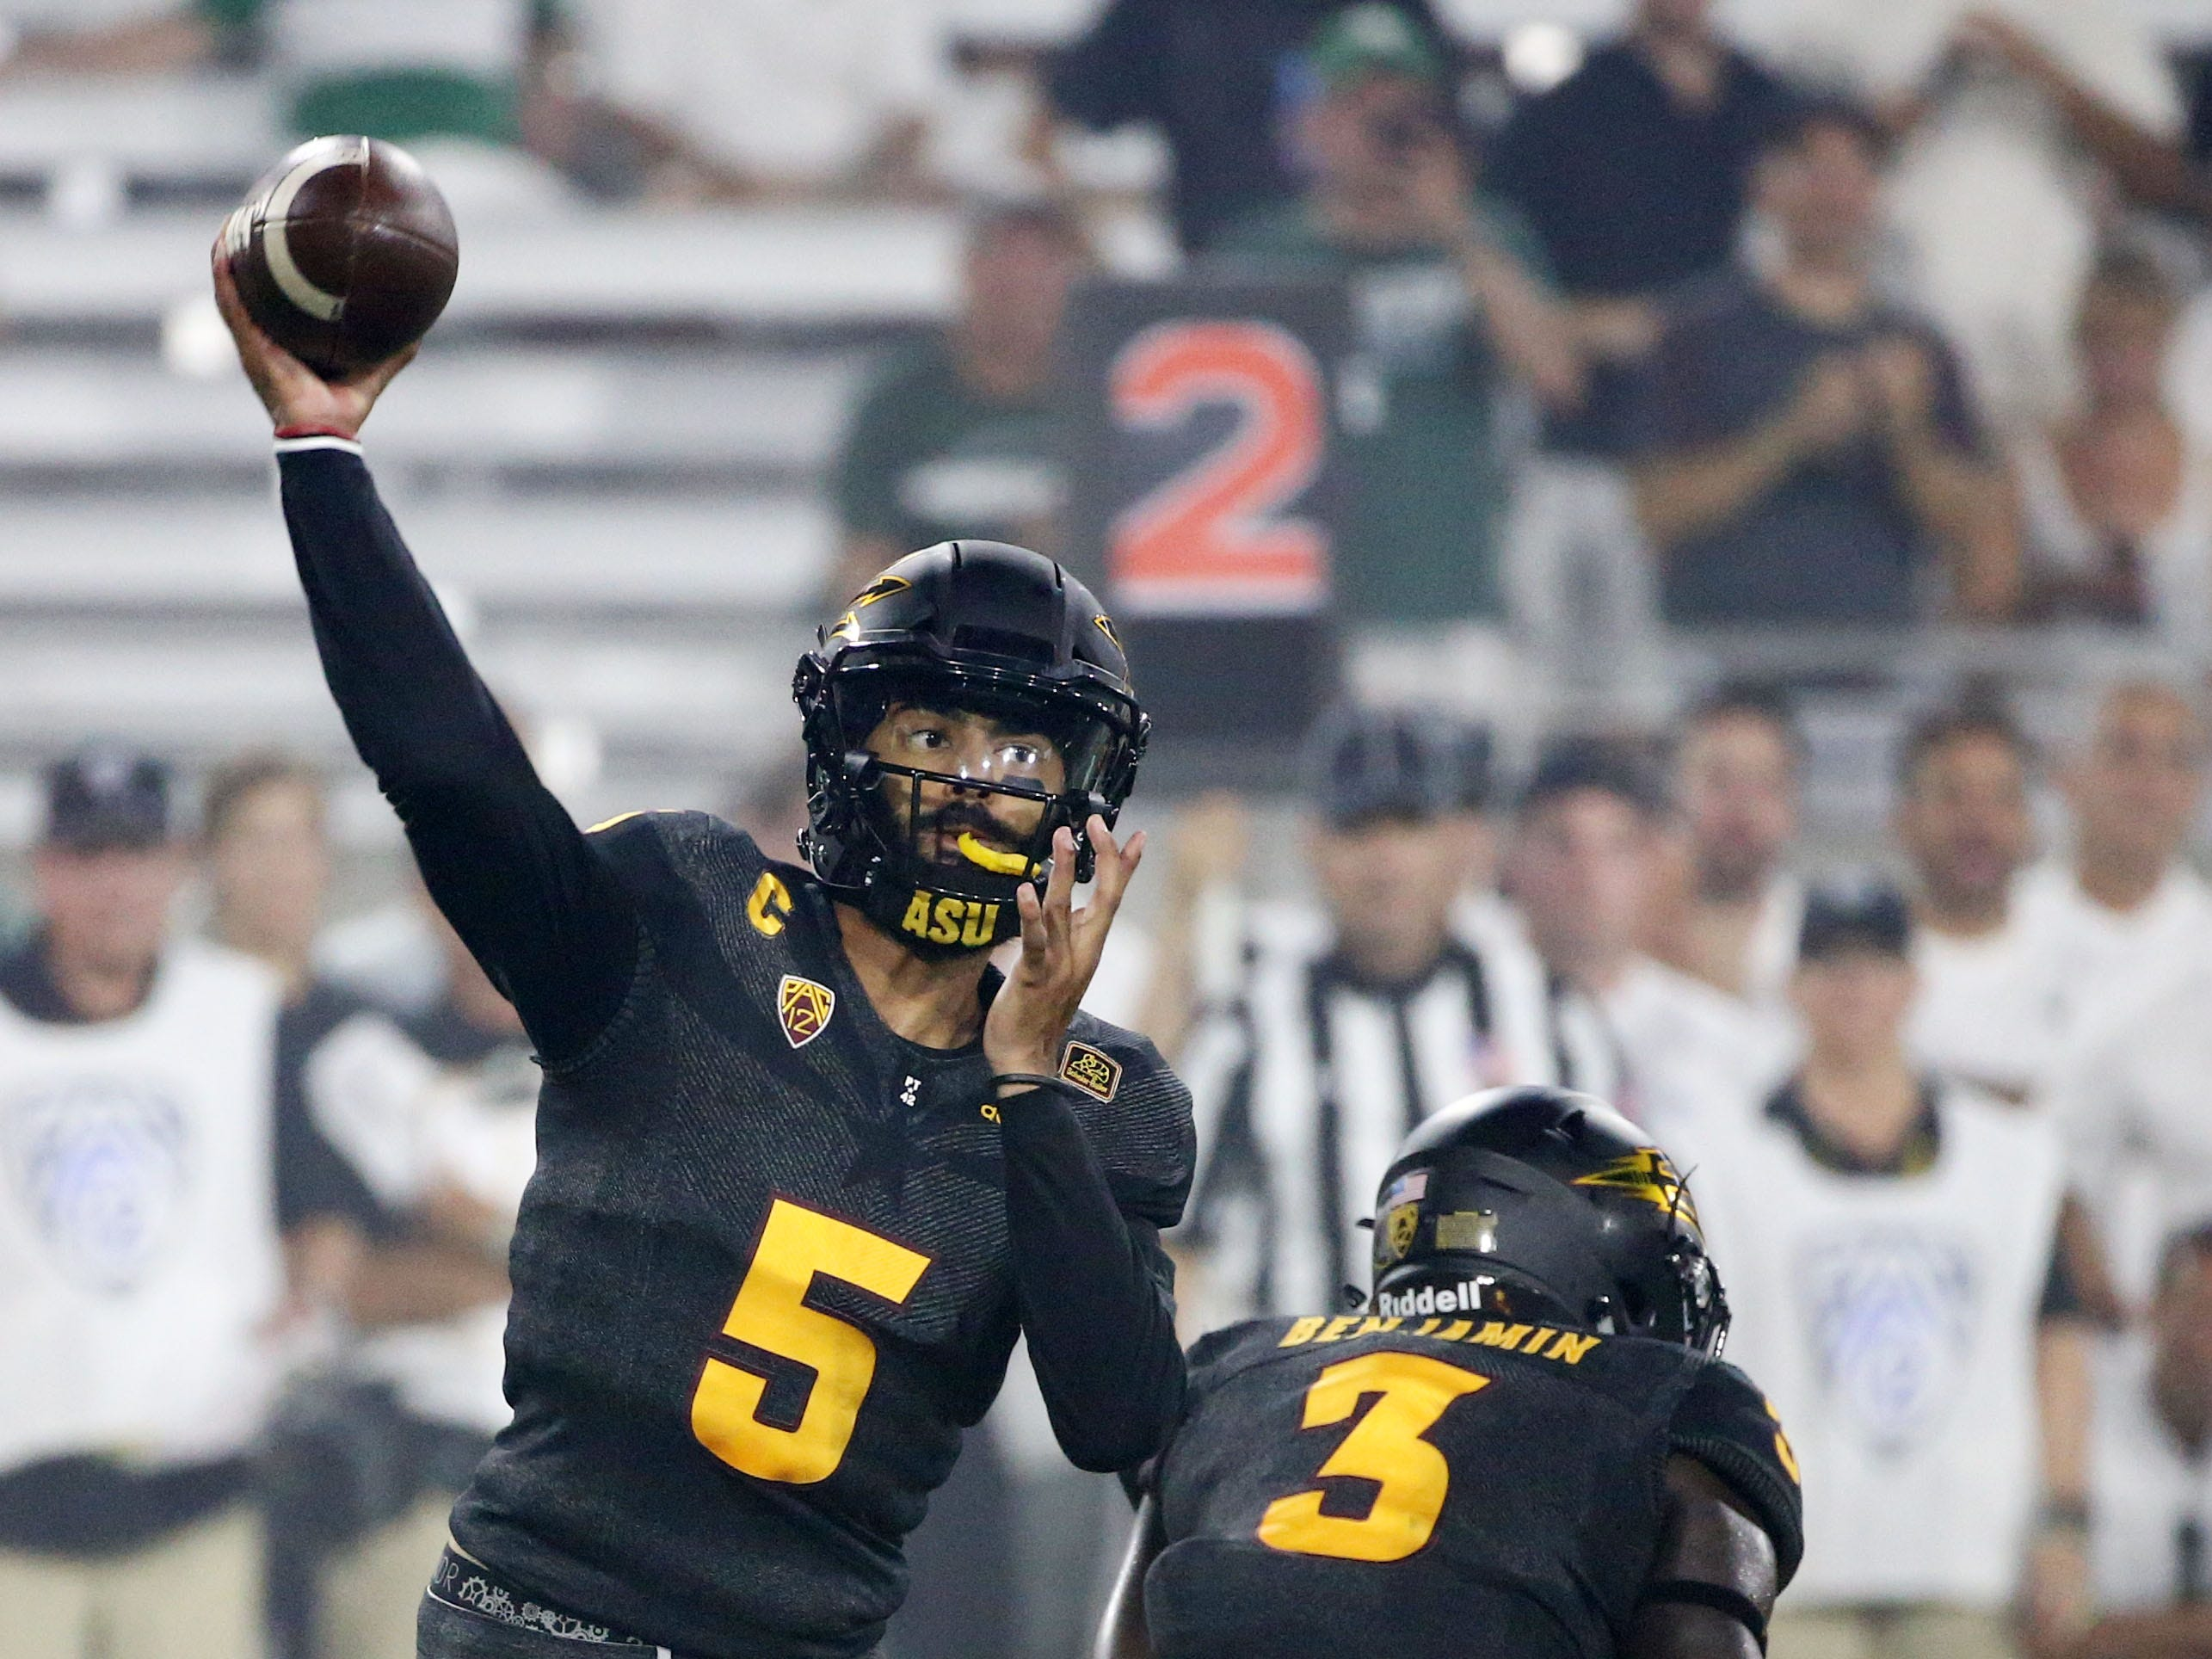 Arizona State quarterback Manny Wilkins throws a pass against Michigan State on Sep. 8, 2018, at Sun Devil Stadium.